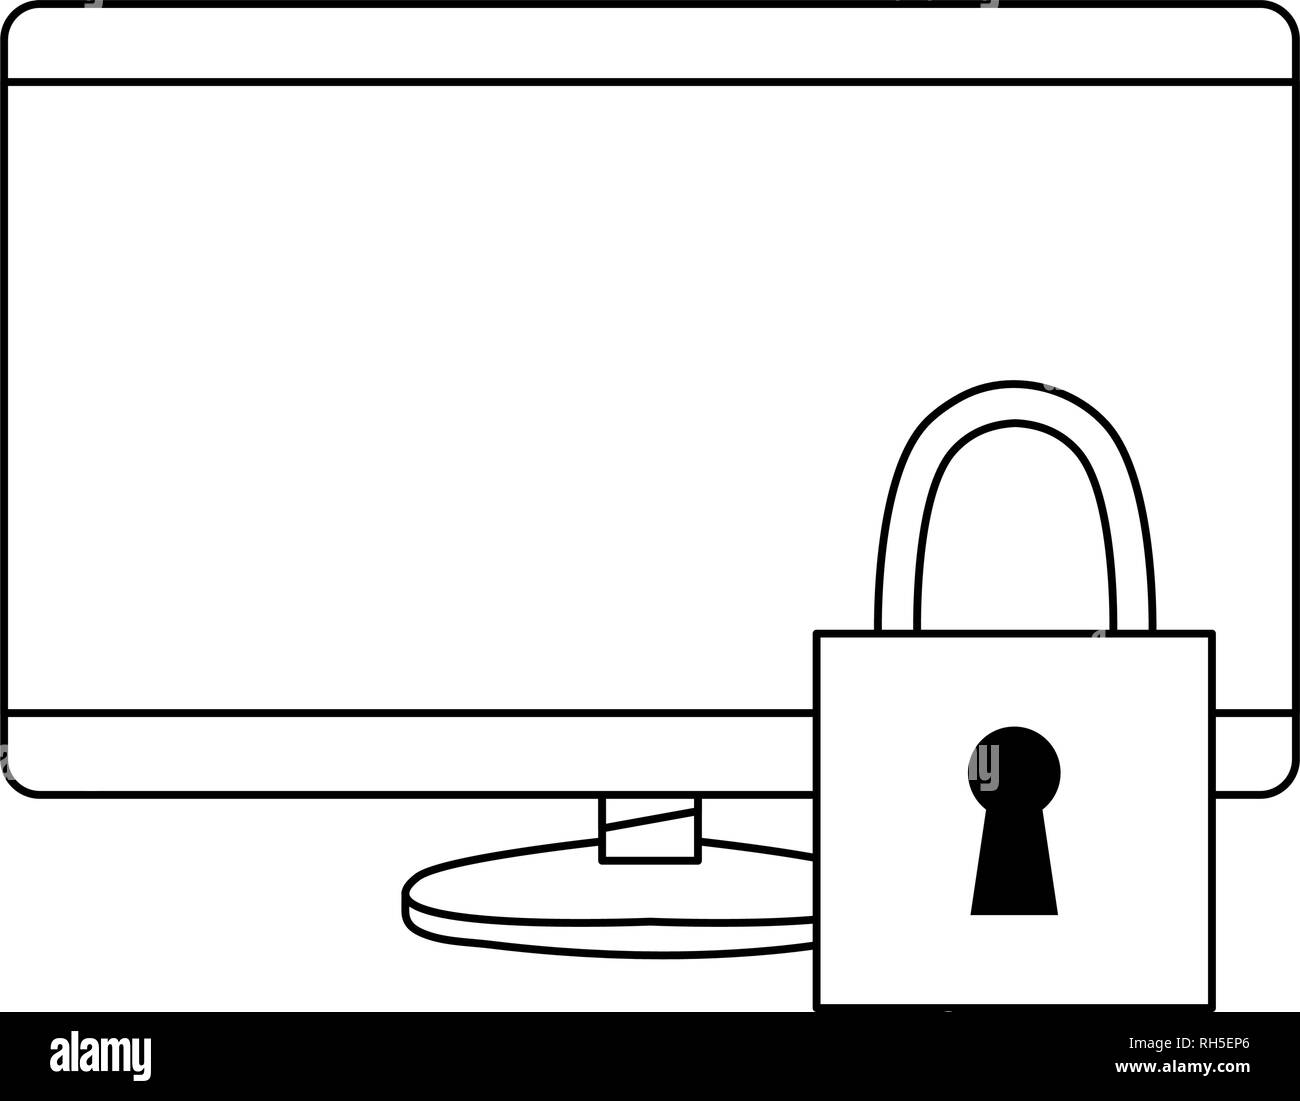 computer digital security protection copyright vector illustration Stock Vector